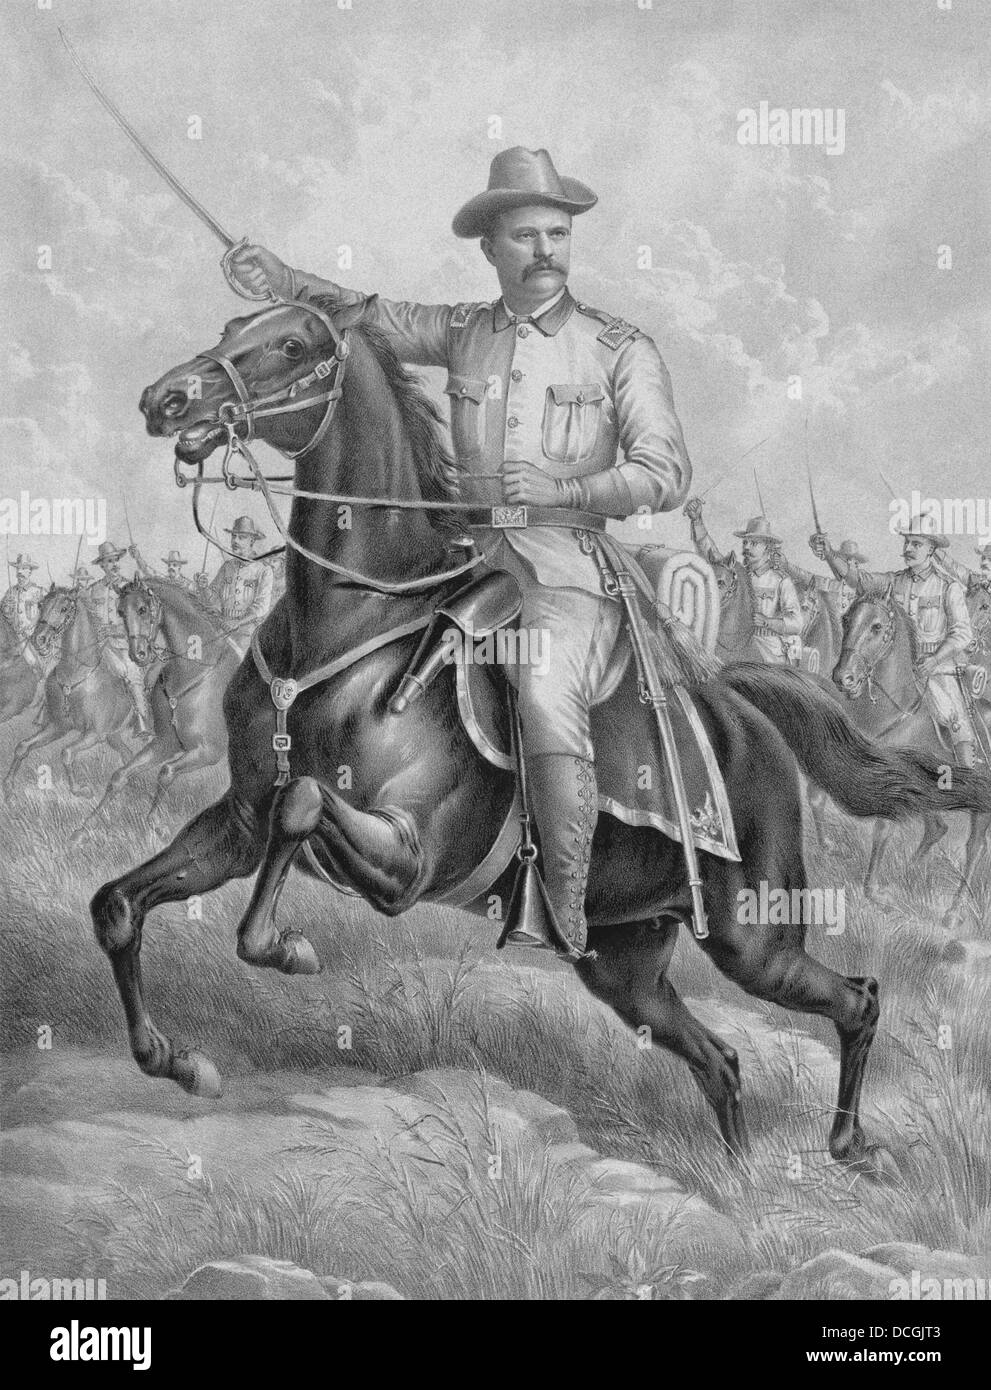 the spanish american war and theodore Florida: essays and poems by fcit spanish-american war: the rough riders in tampa by theodore roosevelt additional information.